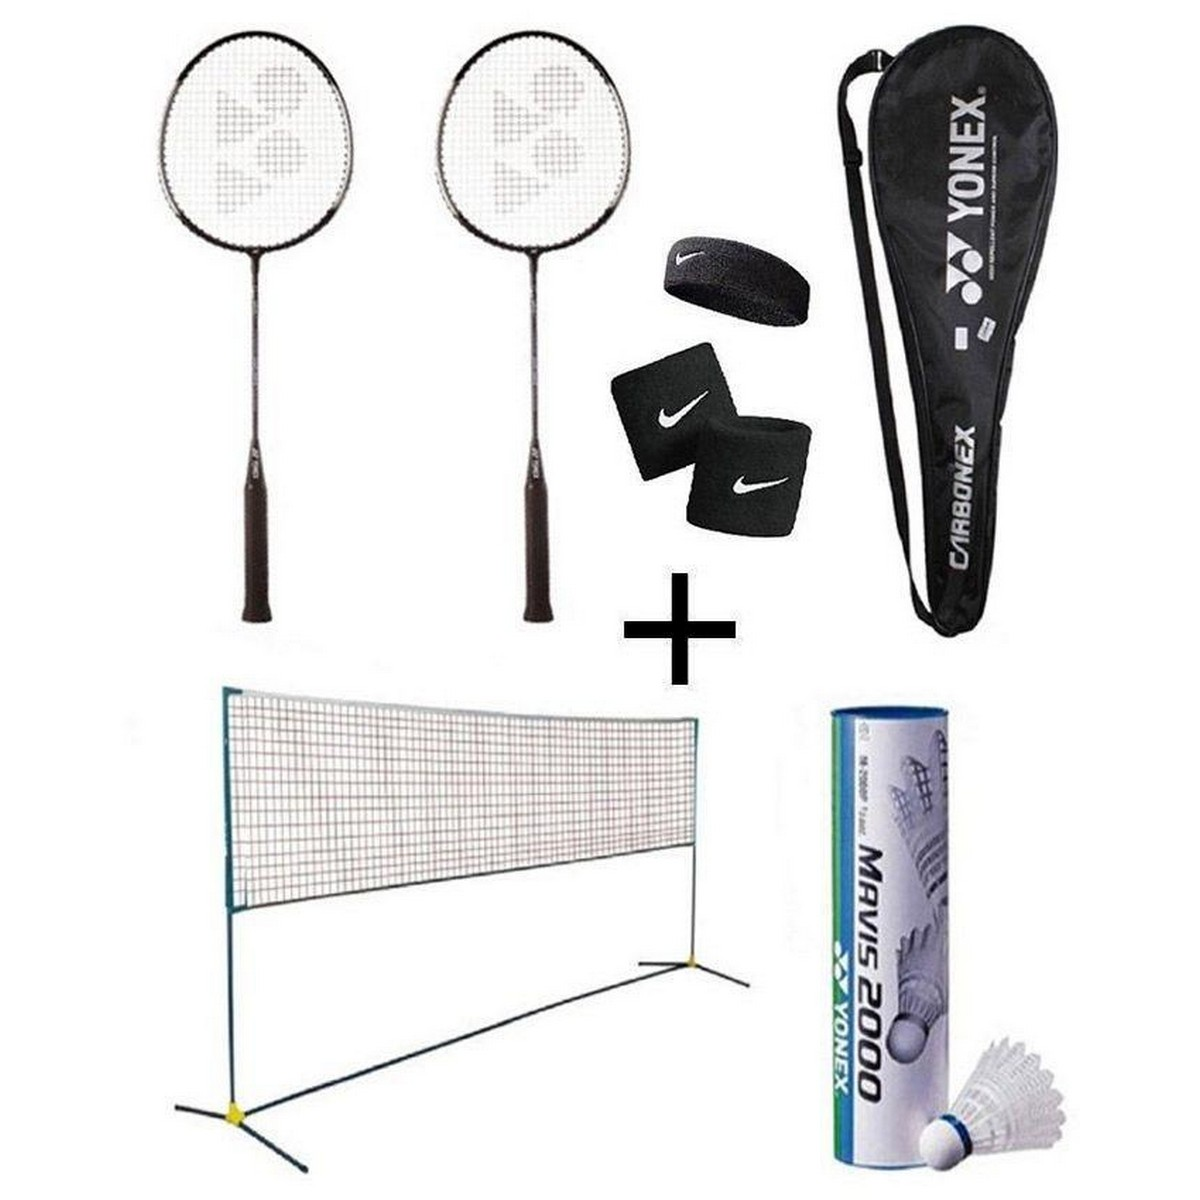 Pack of 12 - Badminton Set Multicolour pair of rackets and badminton net or shuttle 6 pcs hand or head grip